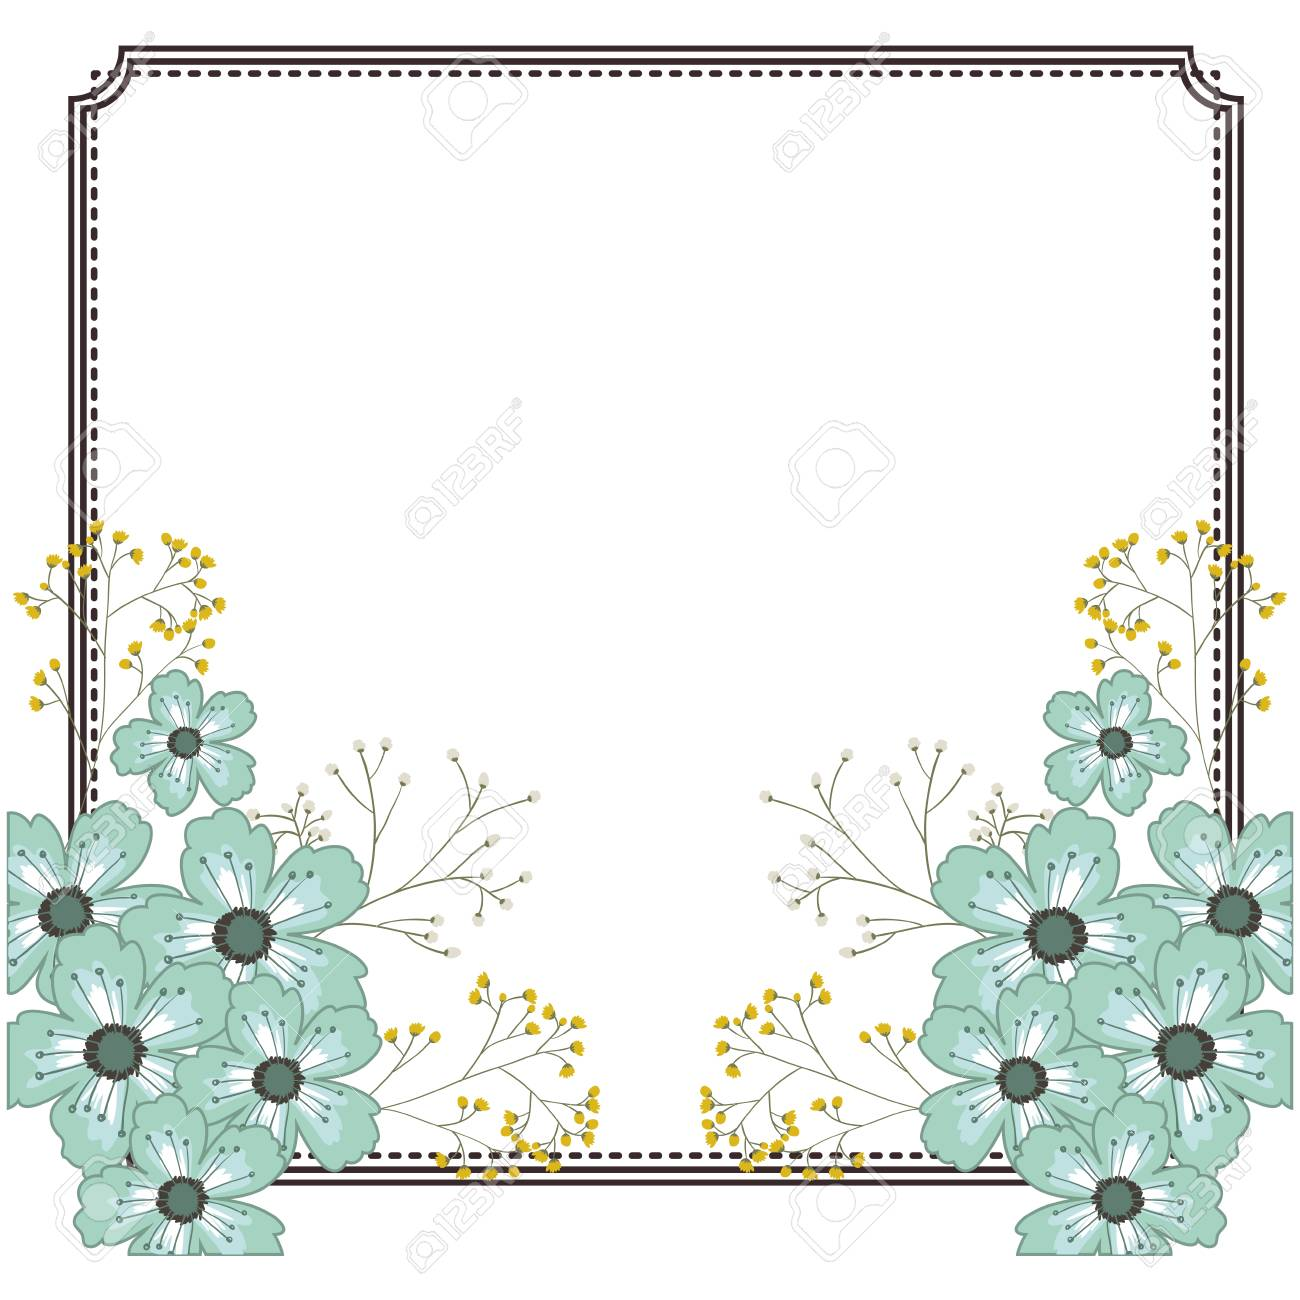 Flowers Frame Icon Decoration Rustic Garden Floral Nature Plant And Spring Theme Isolated Design